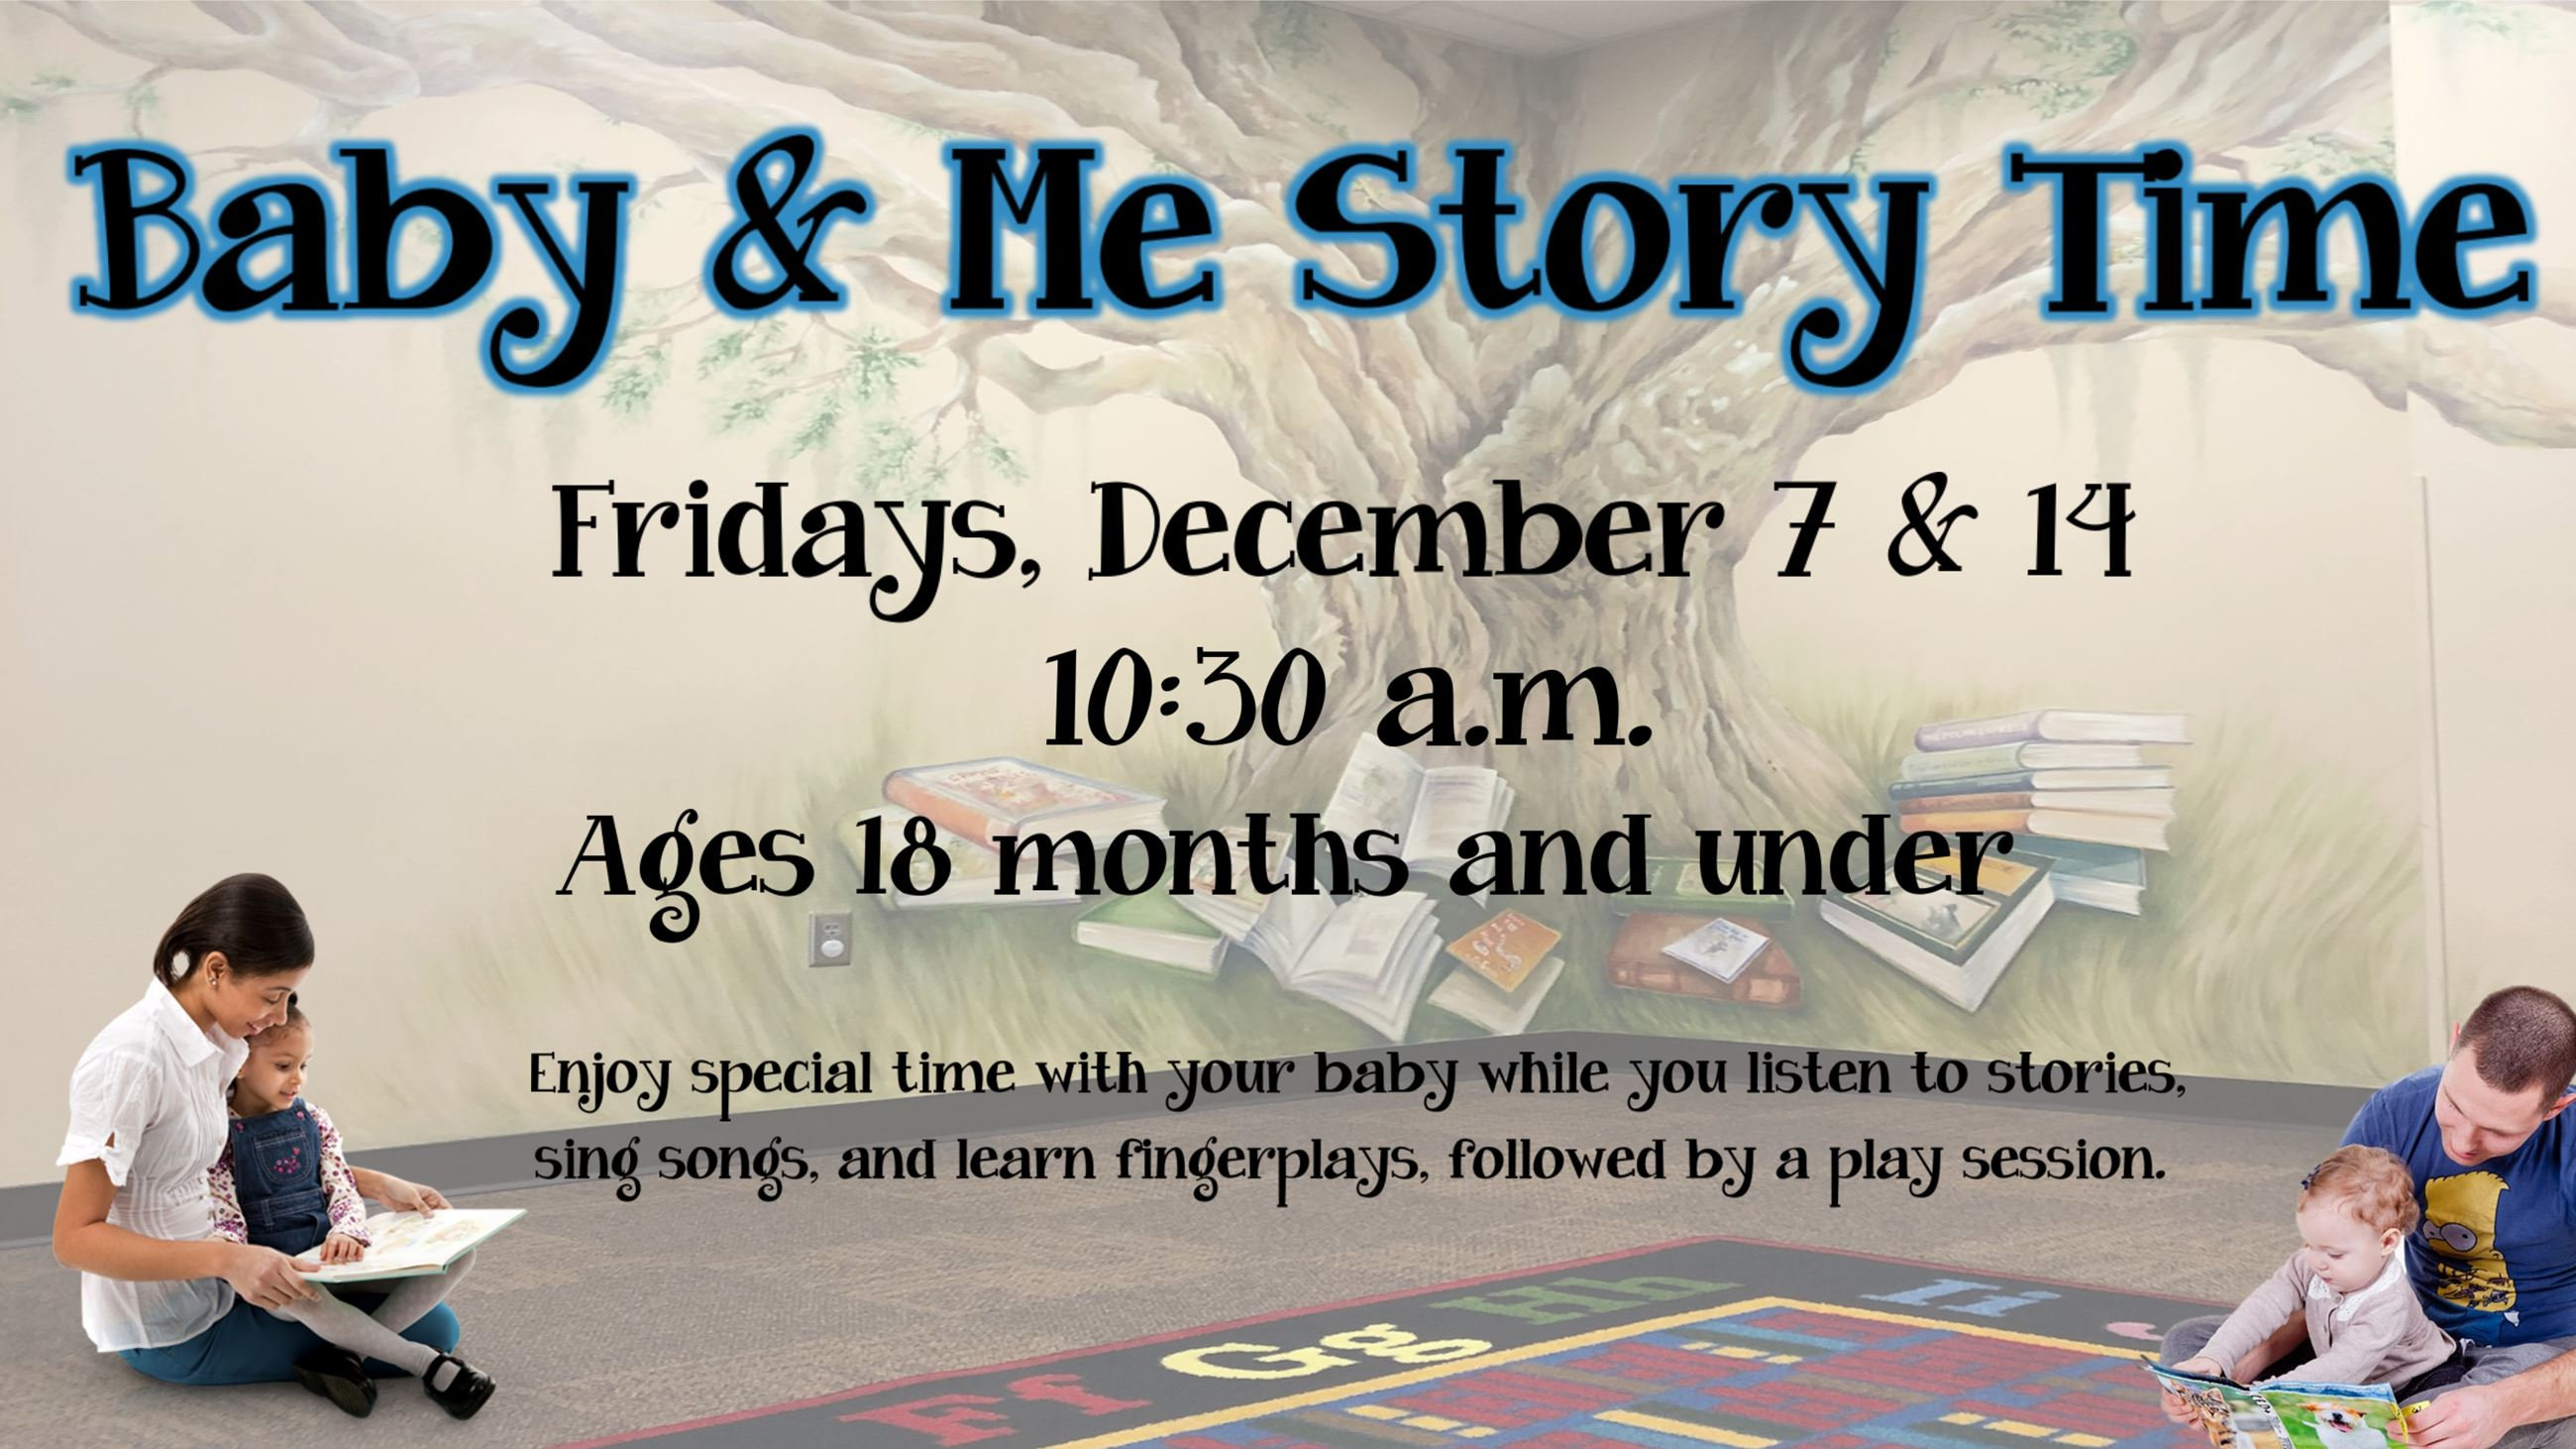 Baby and Me Story Time. December 7 & 14. 10:30 a.m. Ages 18 months & under.